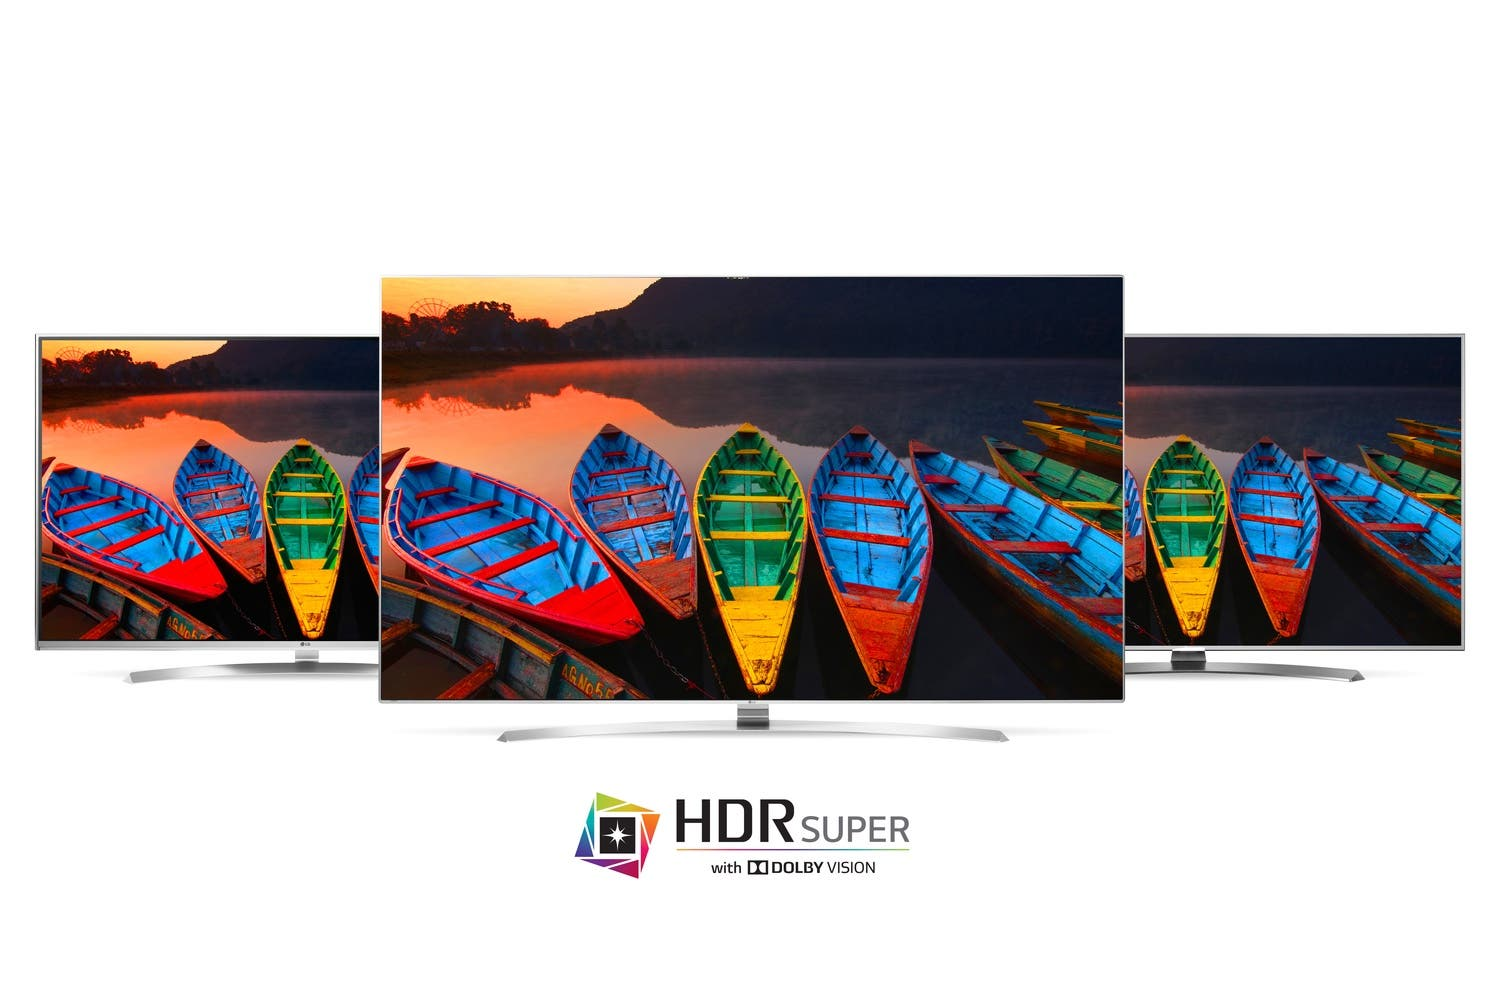 Tipos de HDR: HDR10, Dolby Vision, Technicolor, HLG... 2